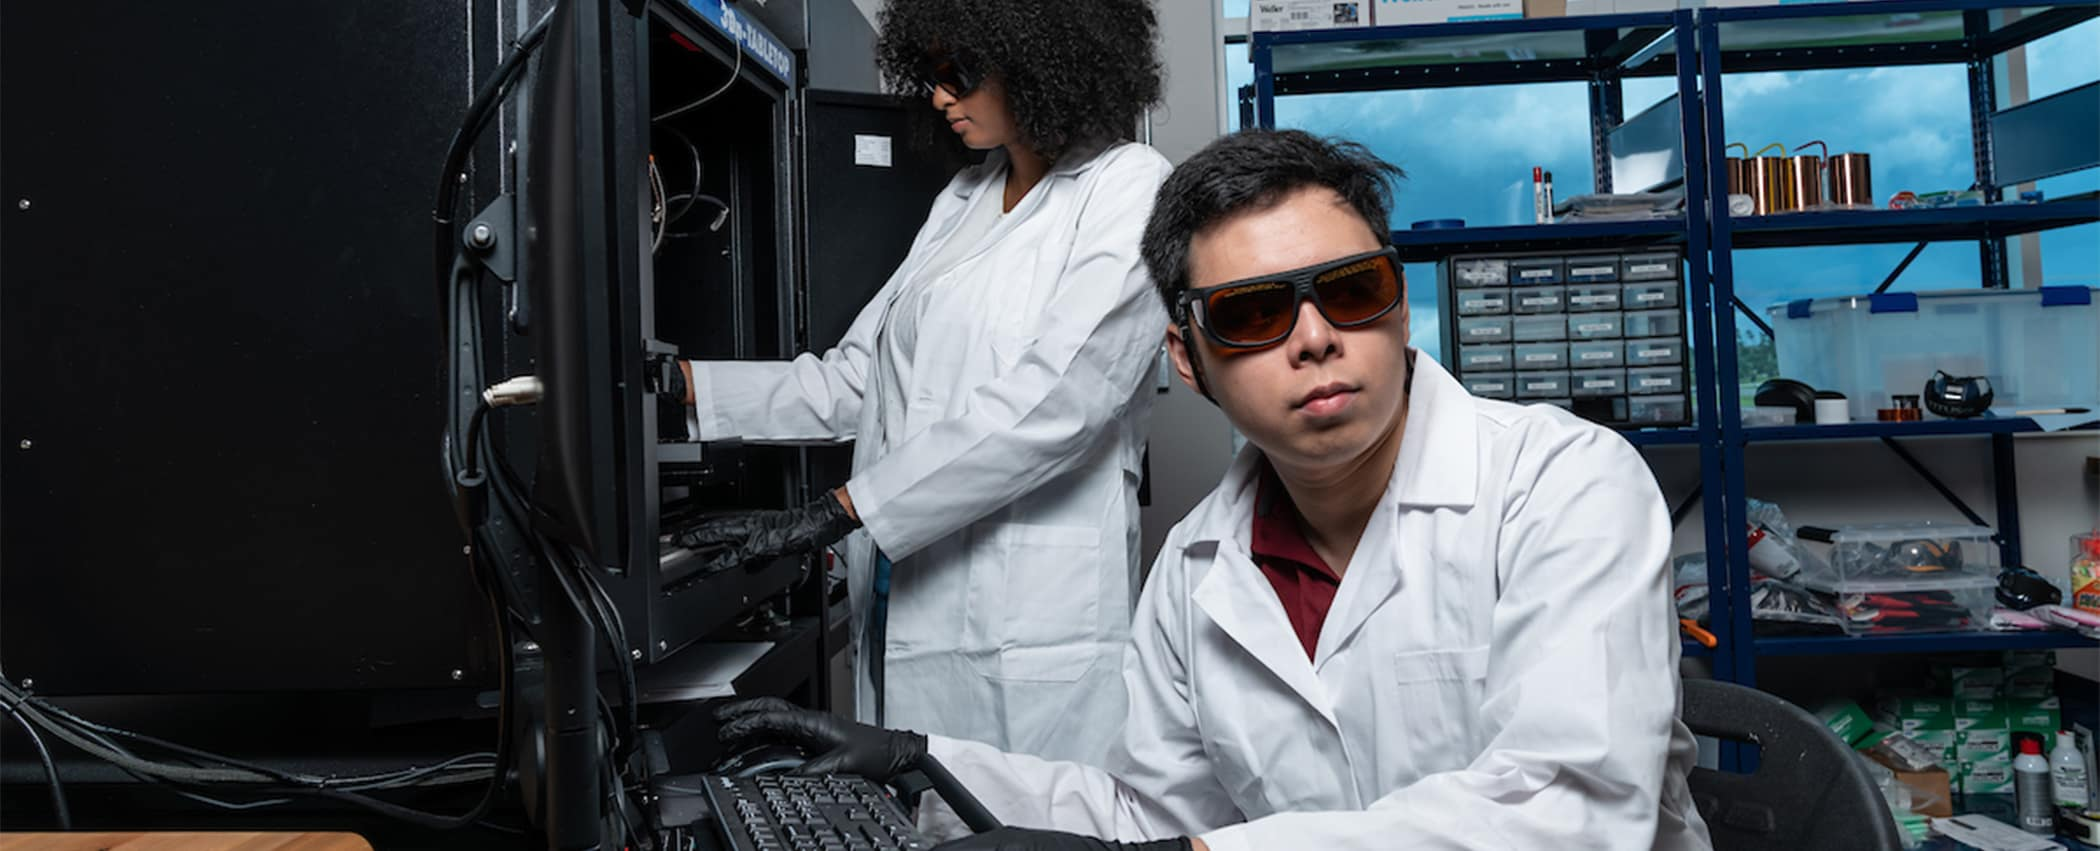 Man and woman research a computer network.